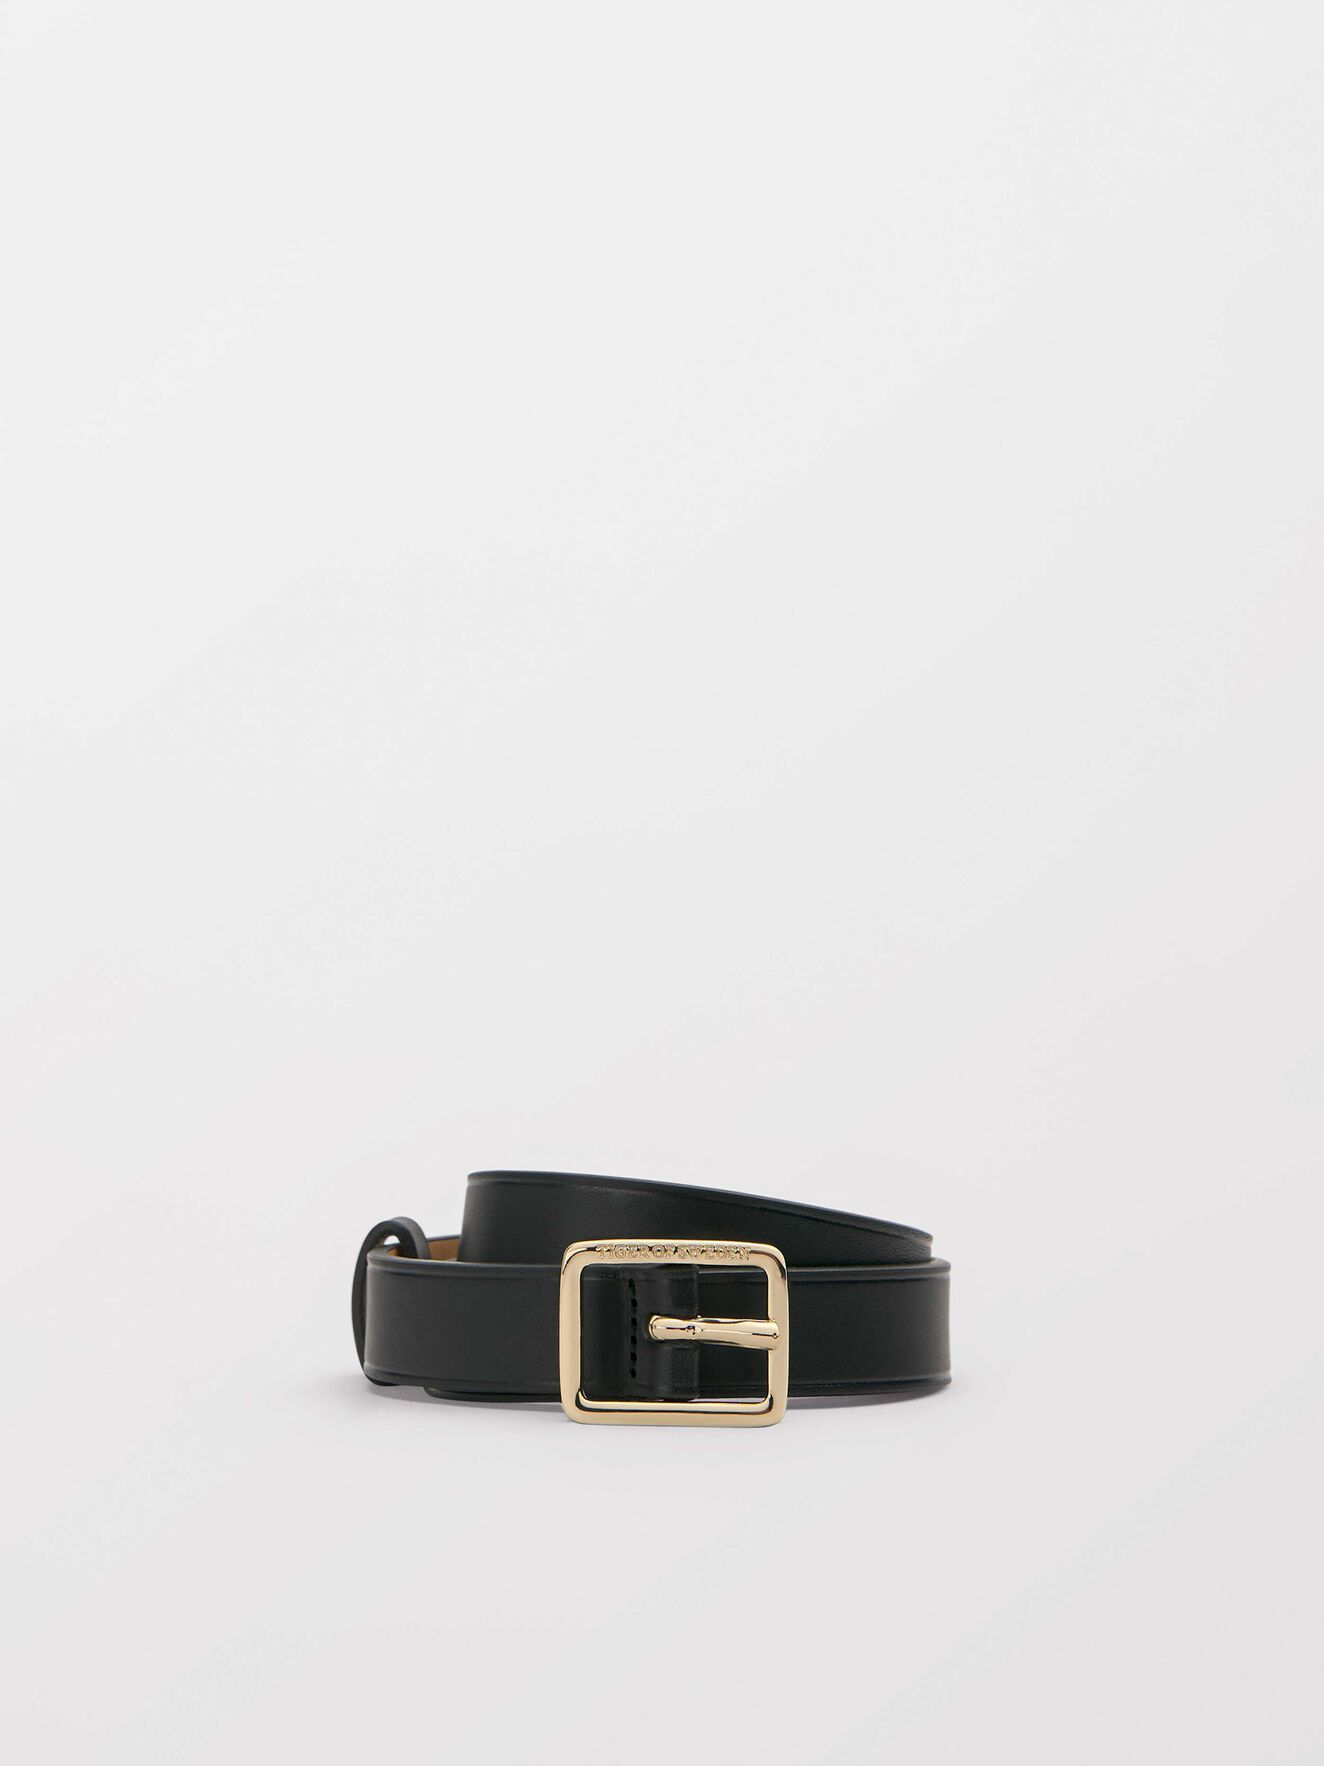 Looe Belt in Black from Tiger of Sweden